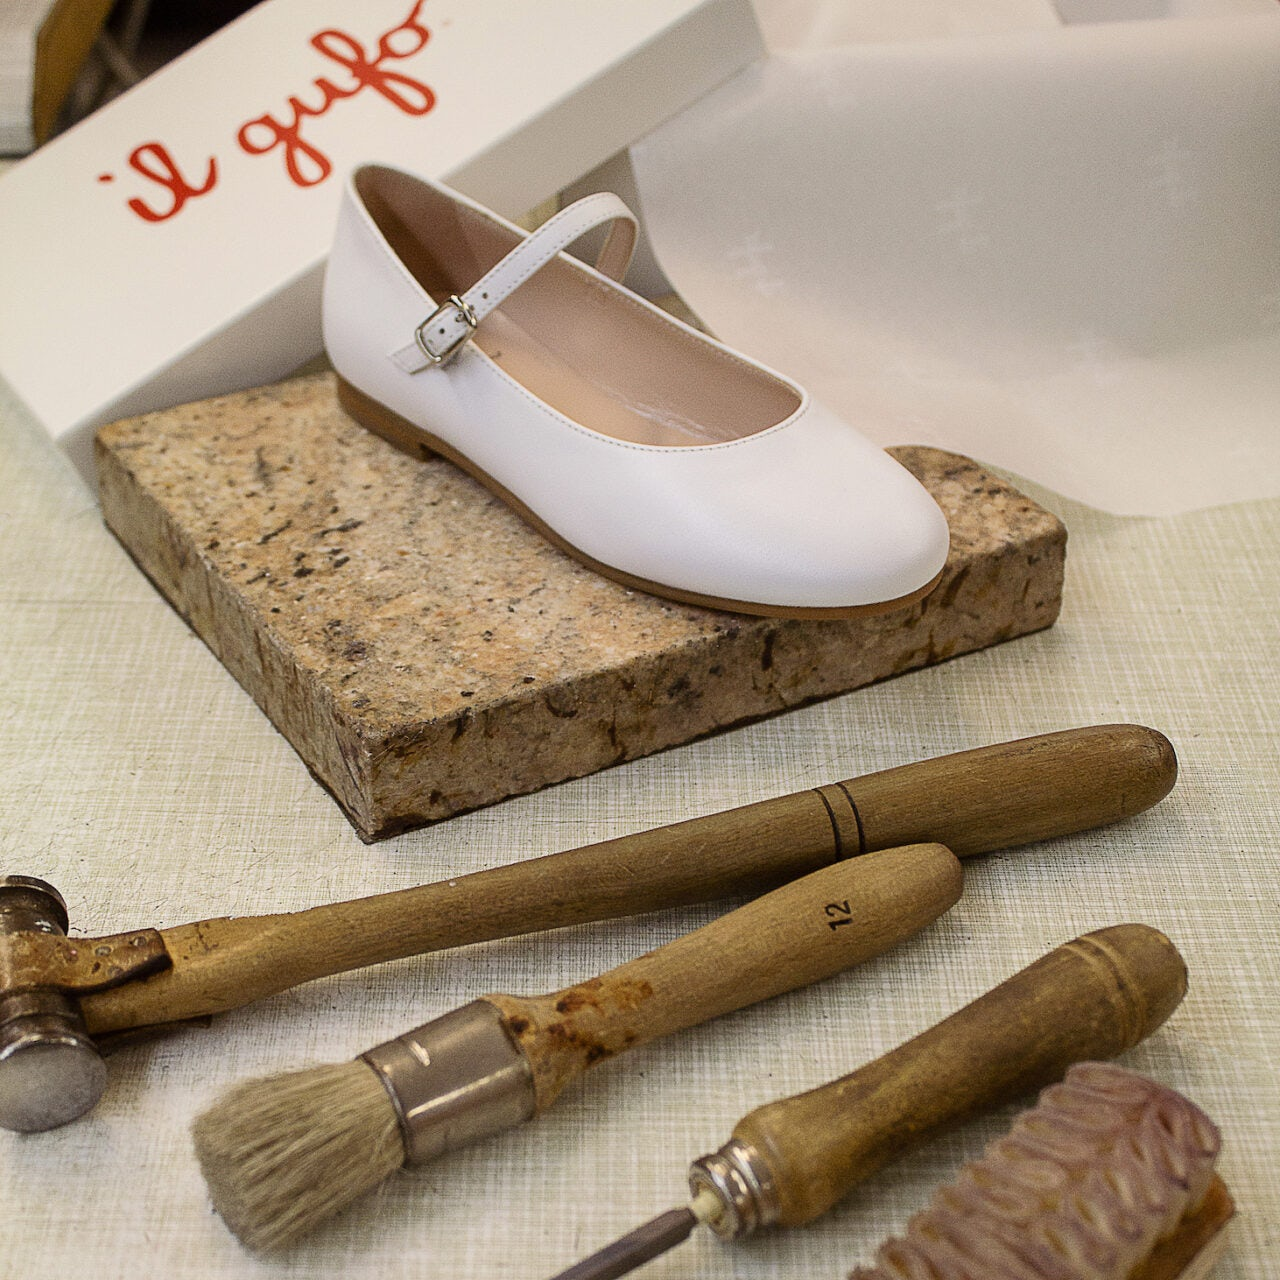 Il Gufo Savior-Faire Episode 4 - THE SHOES